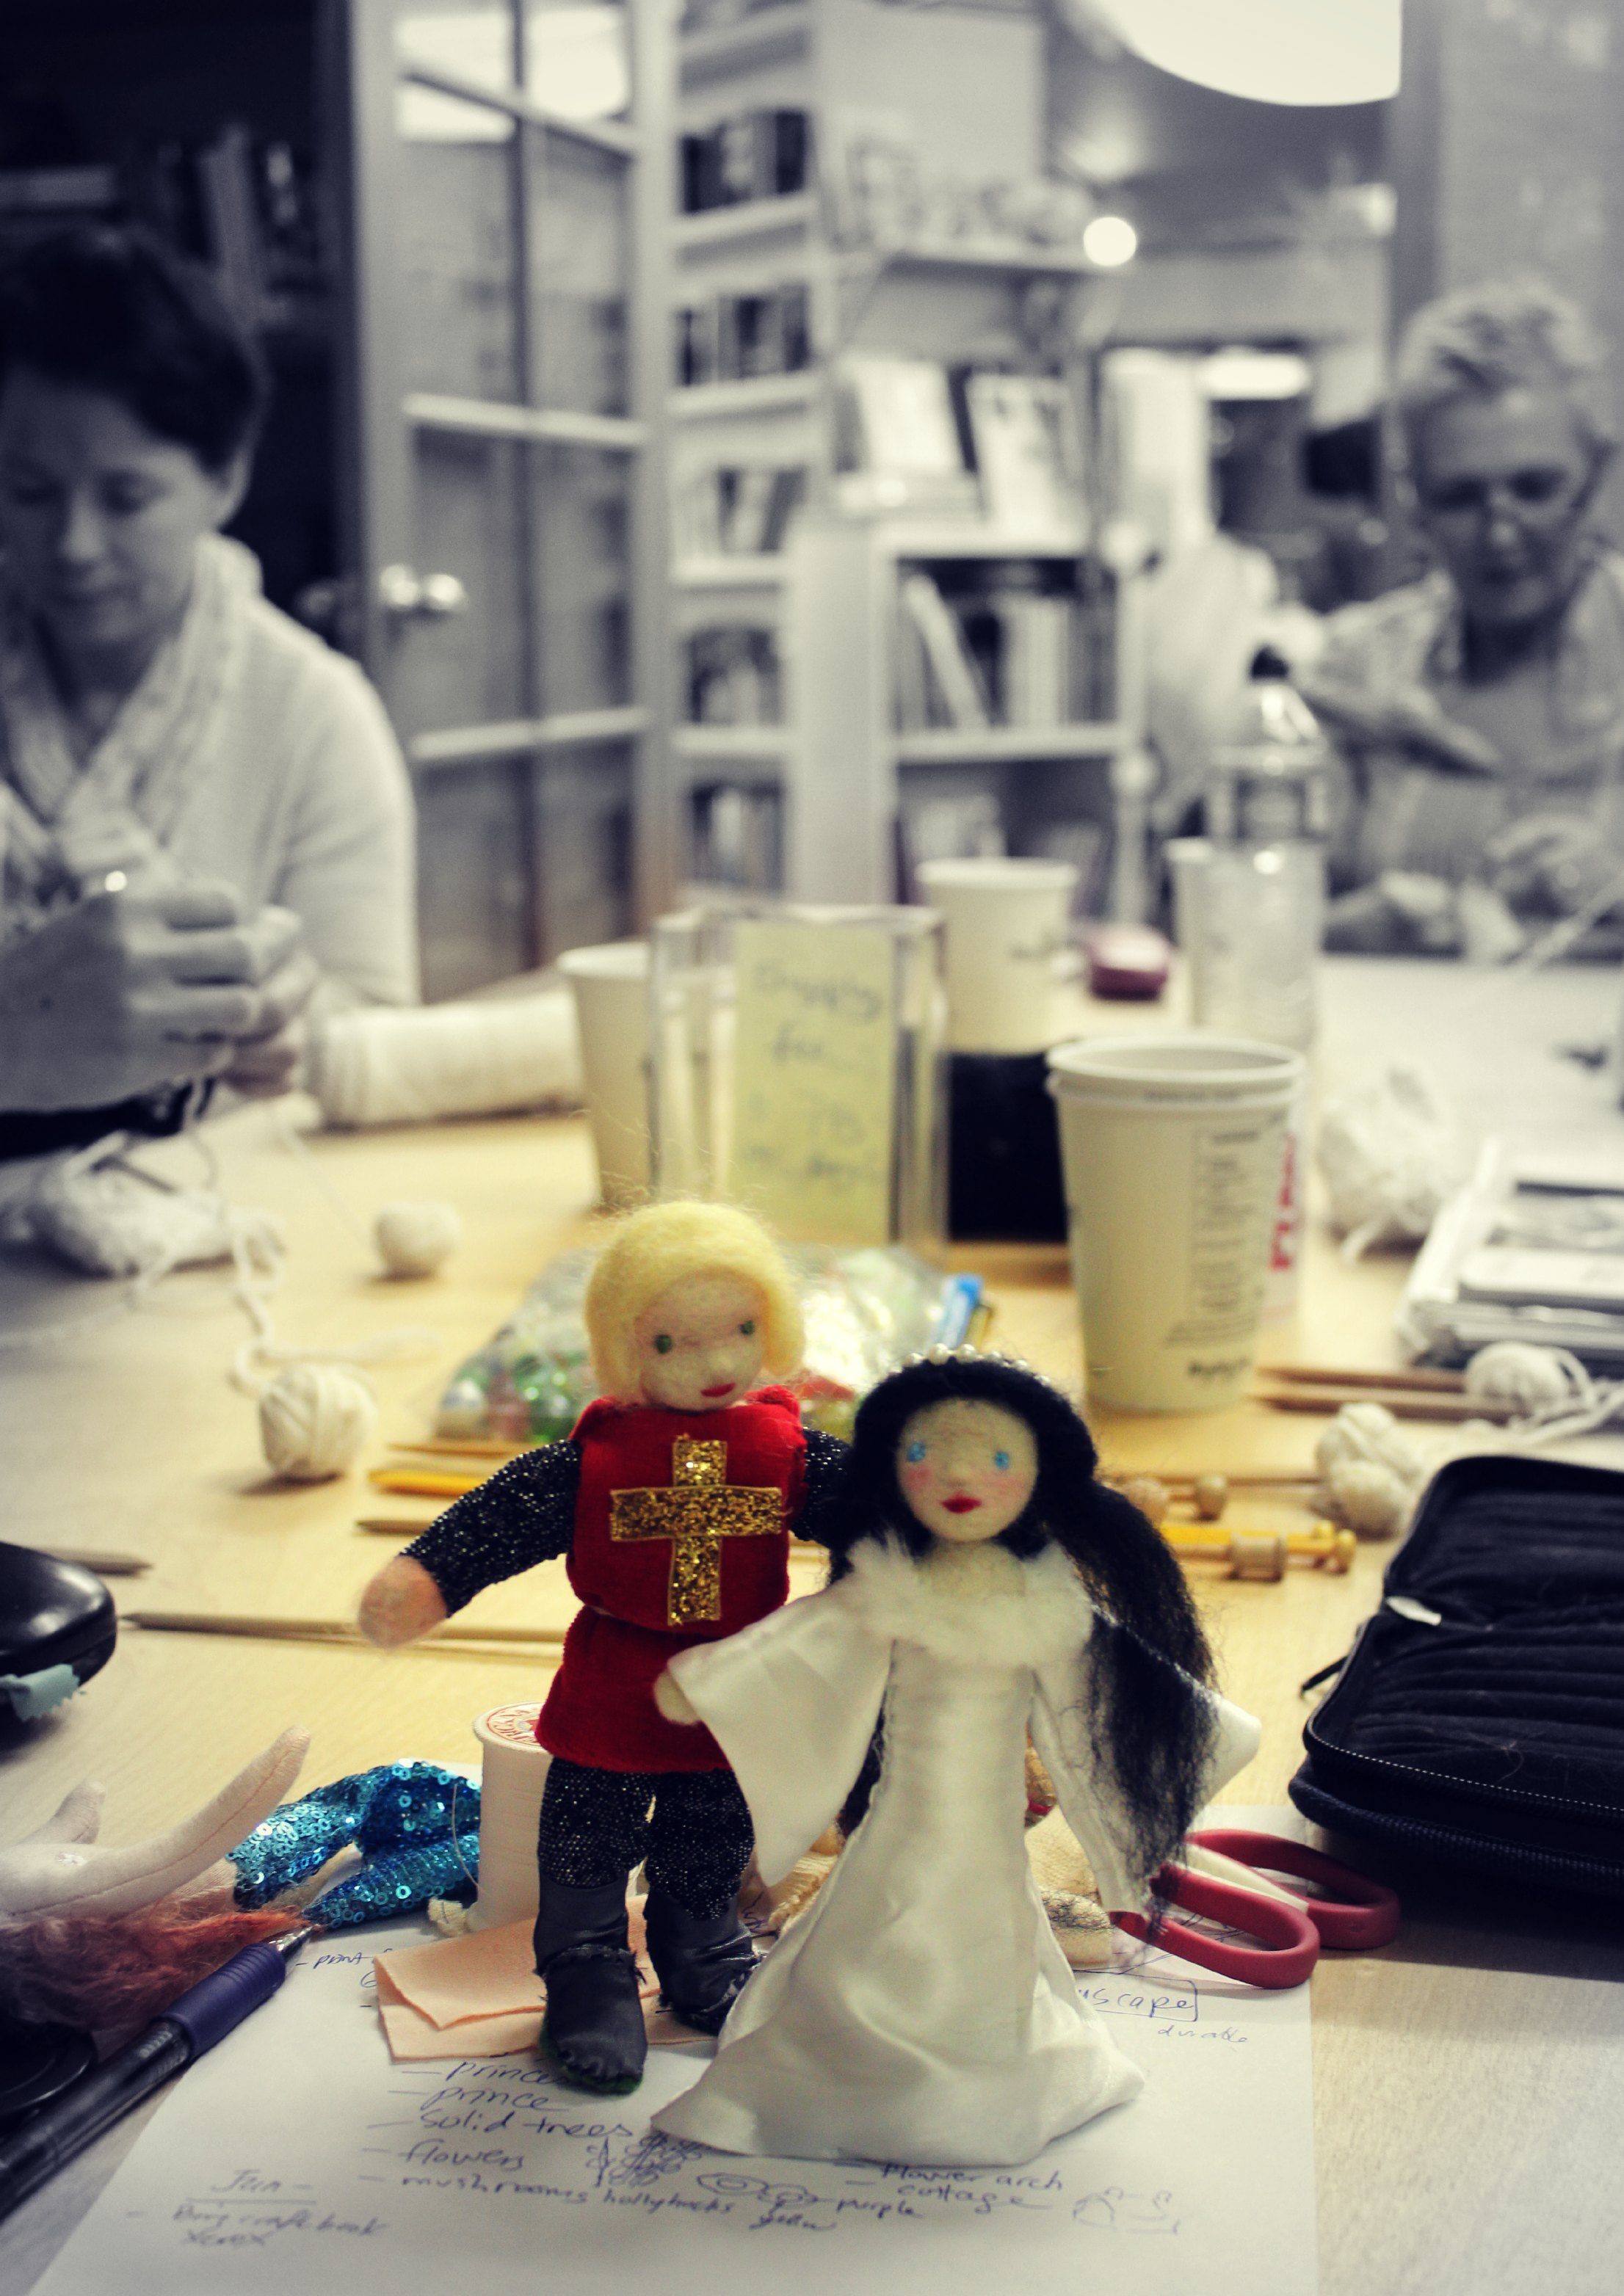 130116 Jzin's handmade dolls. The Knight and The Lady at Craft Group table.